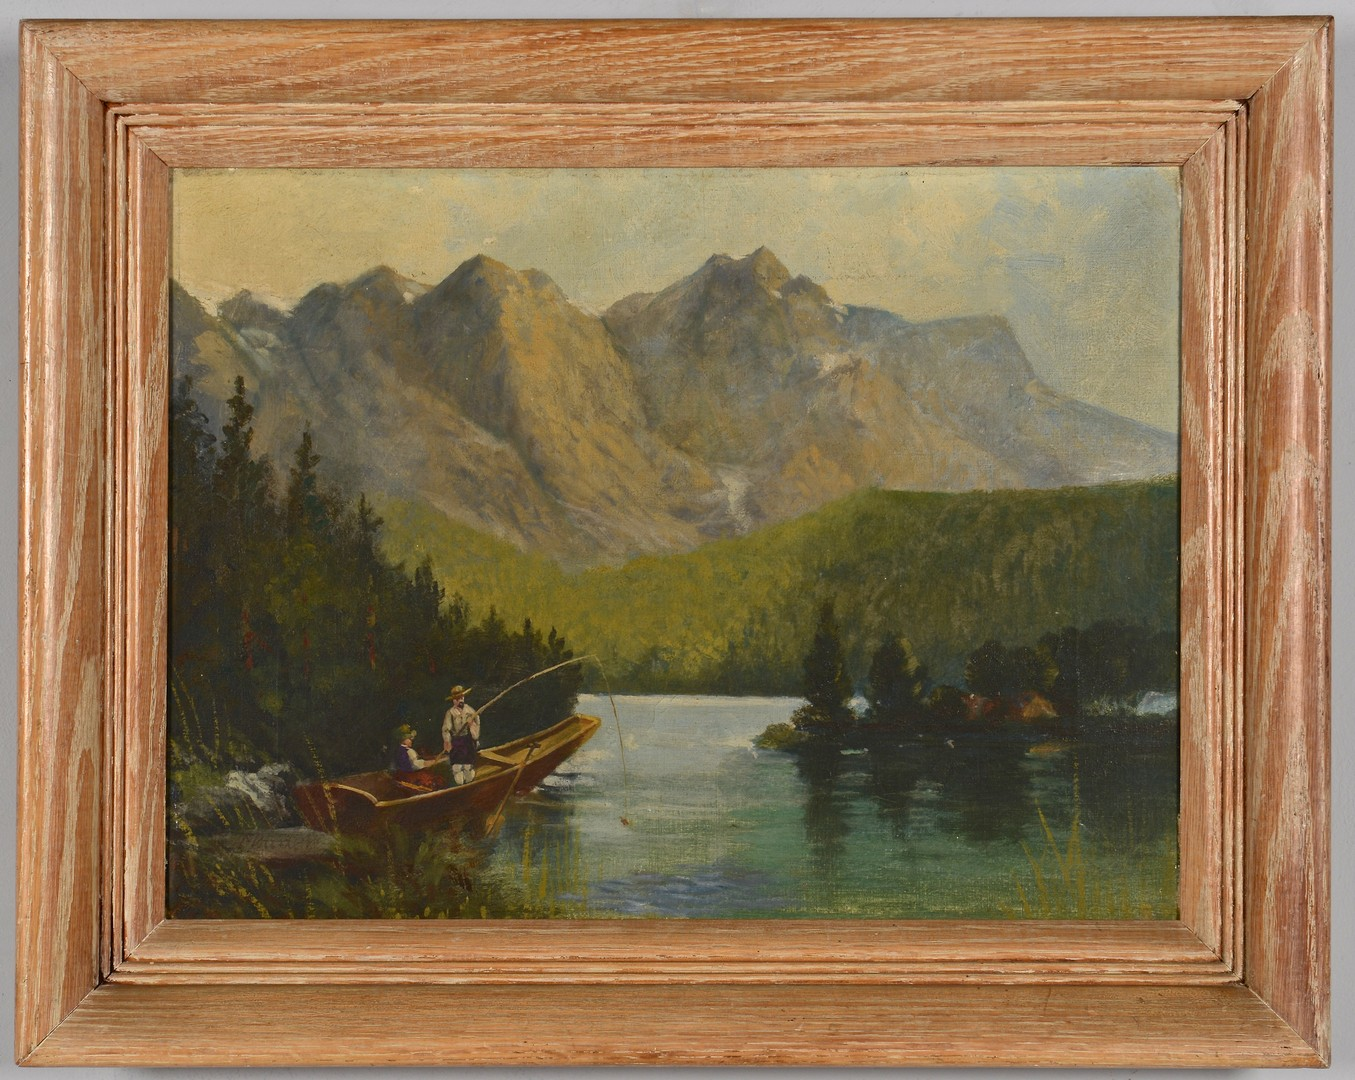 Lot 3832444: O/C Mountain Lakeview w/ Fishermen, Signed Baders